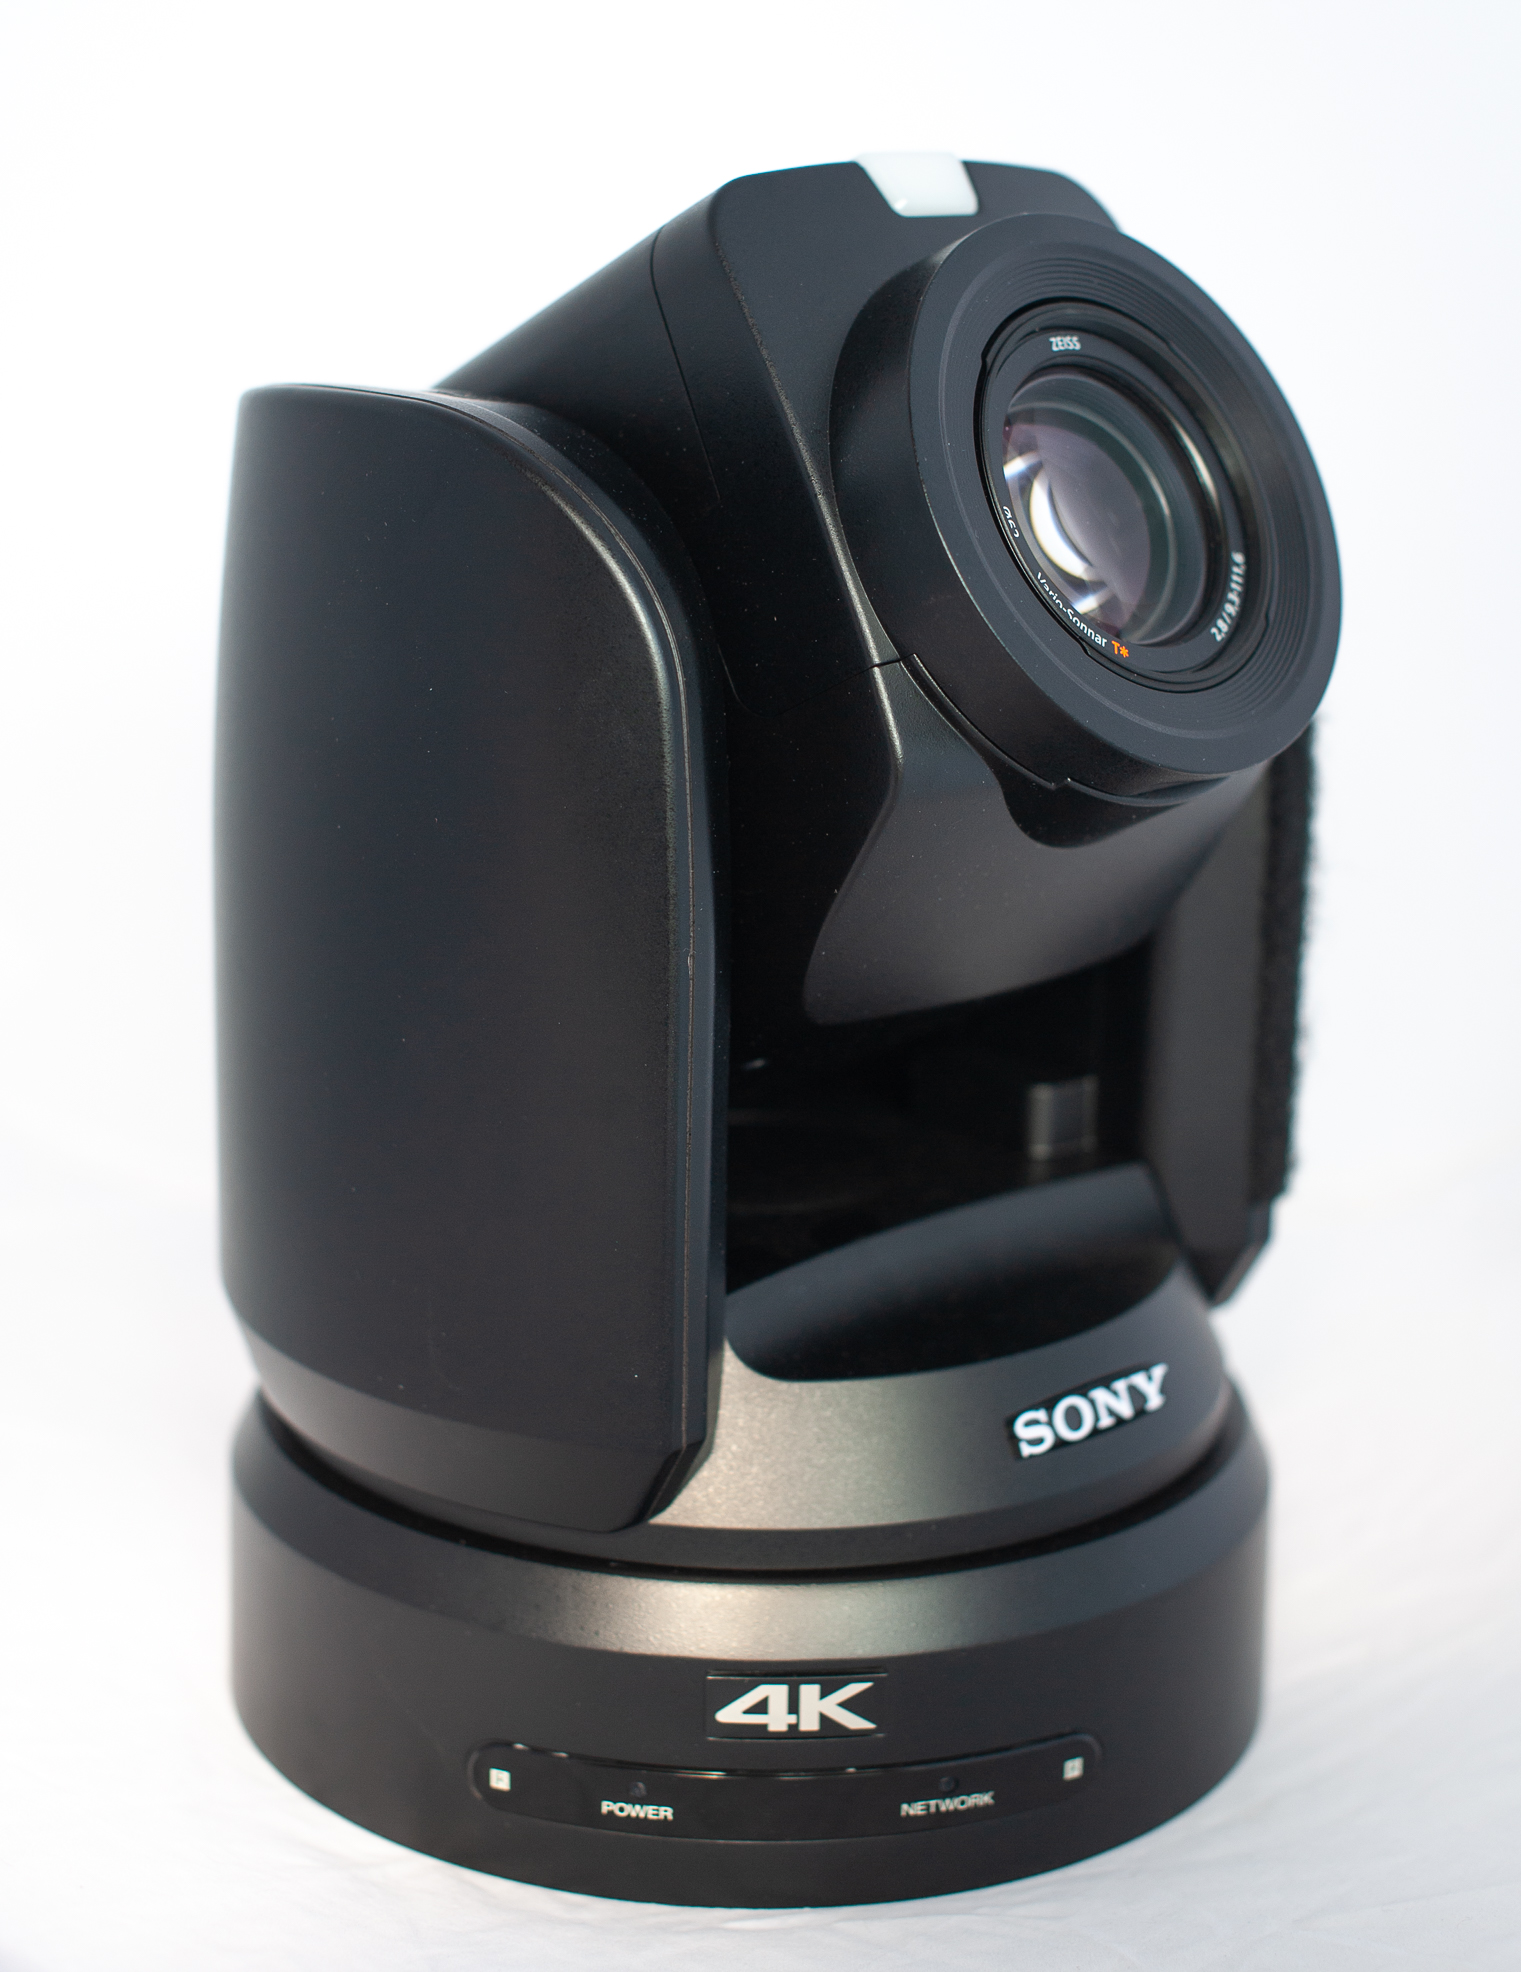 Sony 4K PTZ BRC-X1000 and BRC-H900: REVIEW